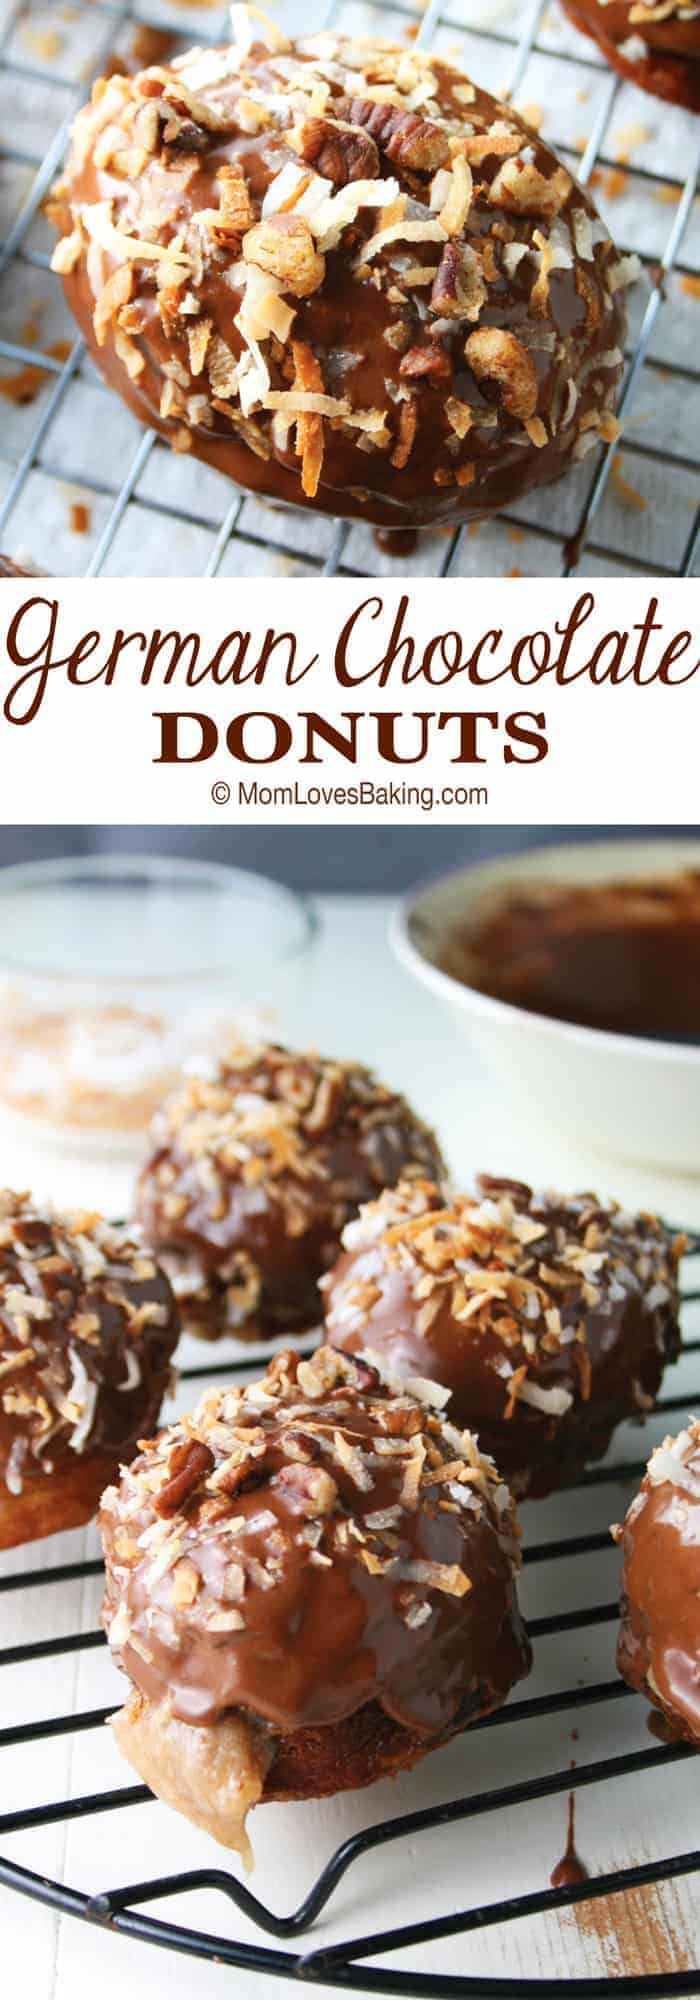 German Chocolate Donuts